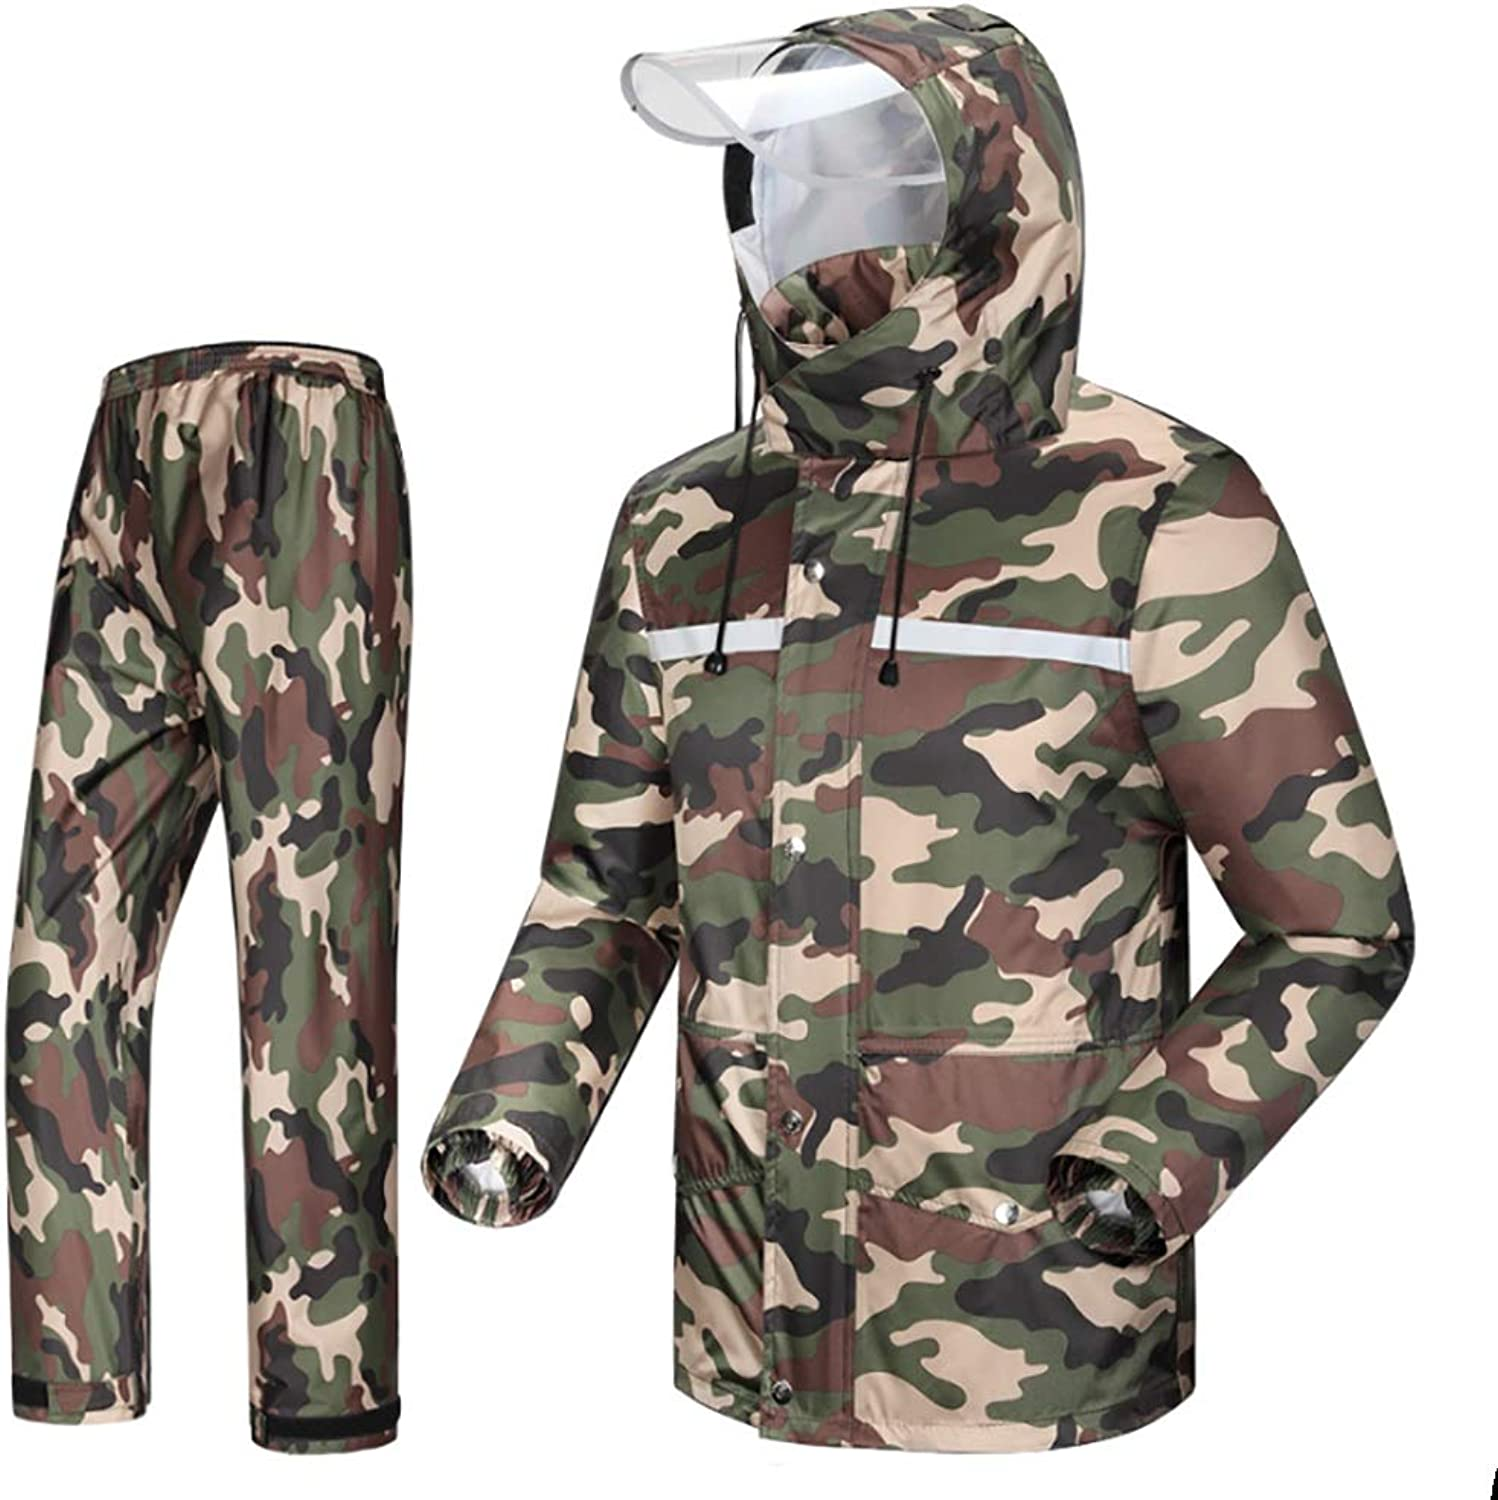 Raincoat Trouser Split Suit Camo Adult Waterproof Bicycle Motorcycle Riding Work Camping Fishing (Size   XXXXL)